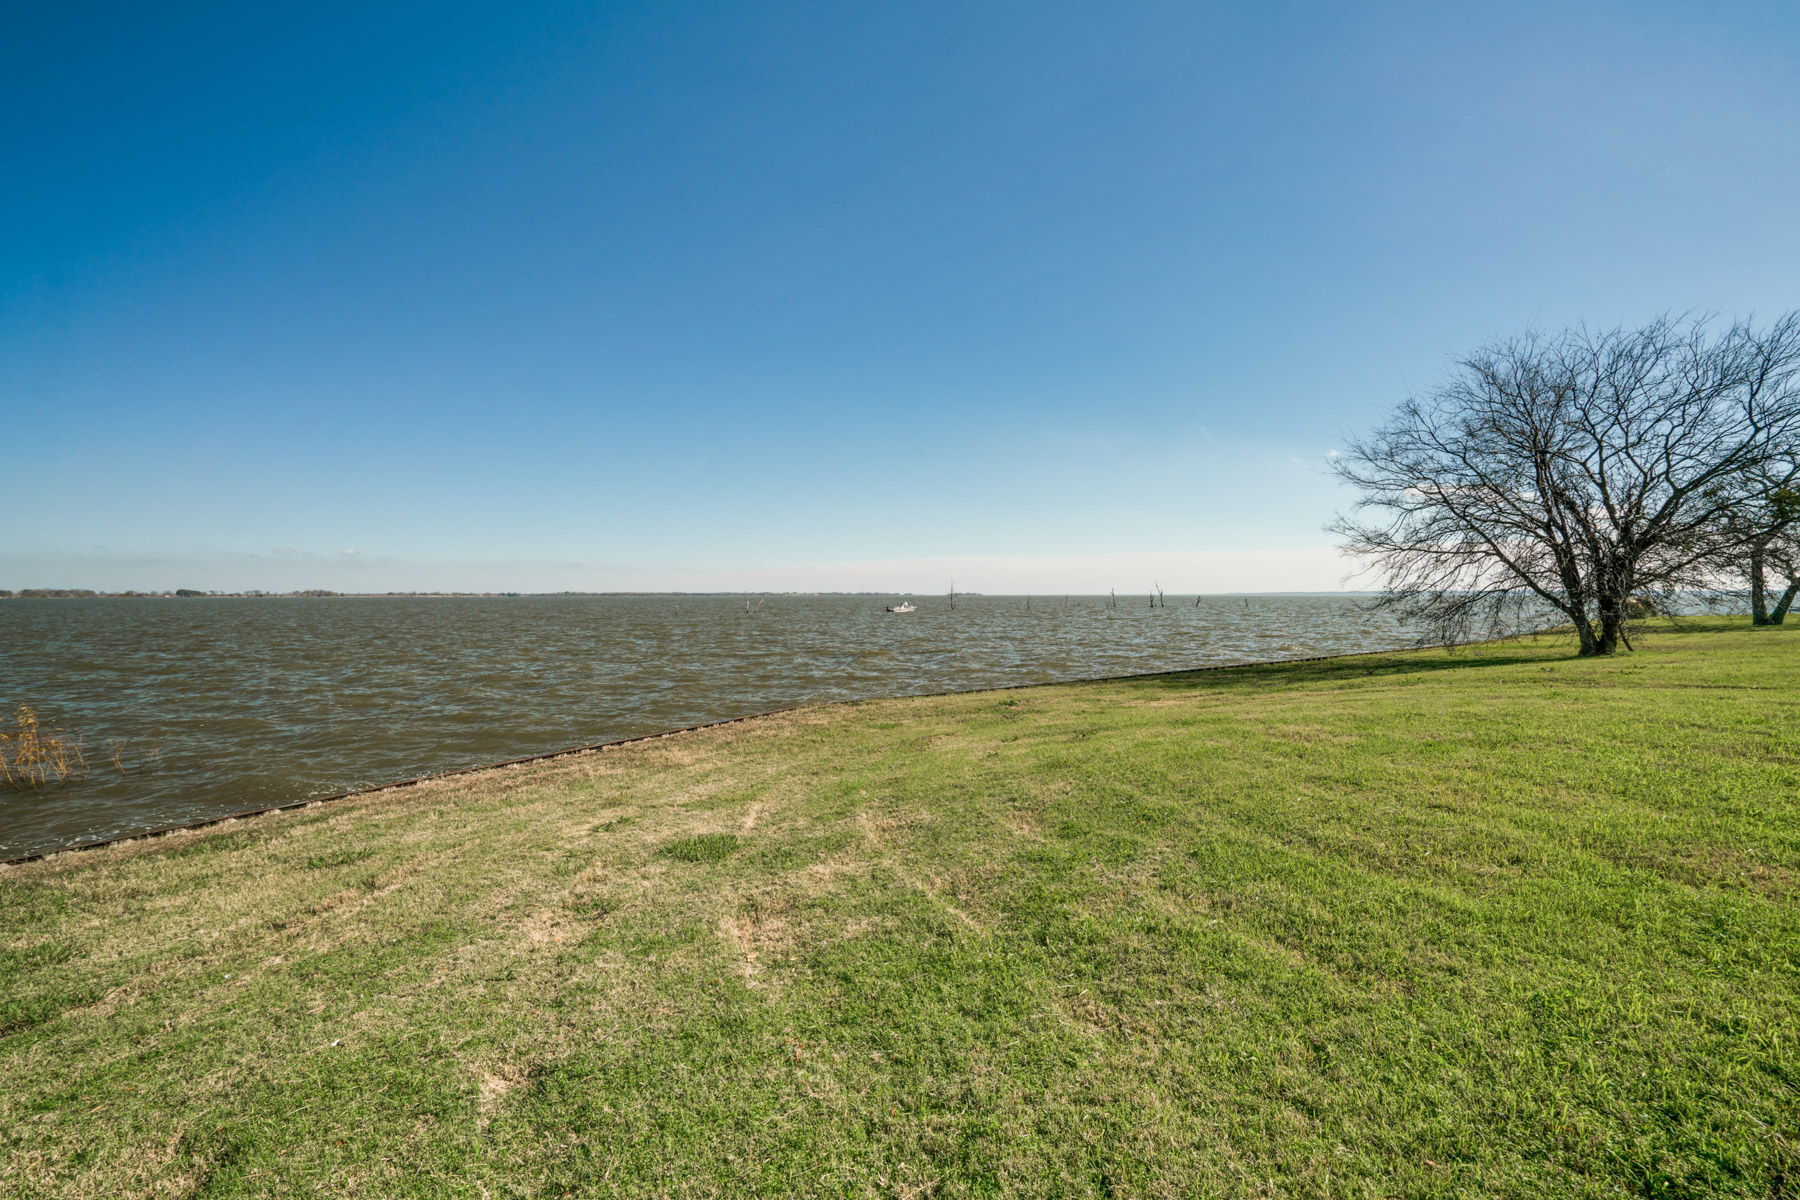 Land for Sale at Stunning Richland-Chambers Reservoir Lot Lot 33 White Rock Road, Corsicana, Texas 75109 United States